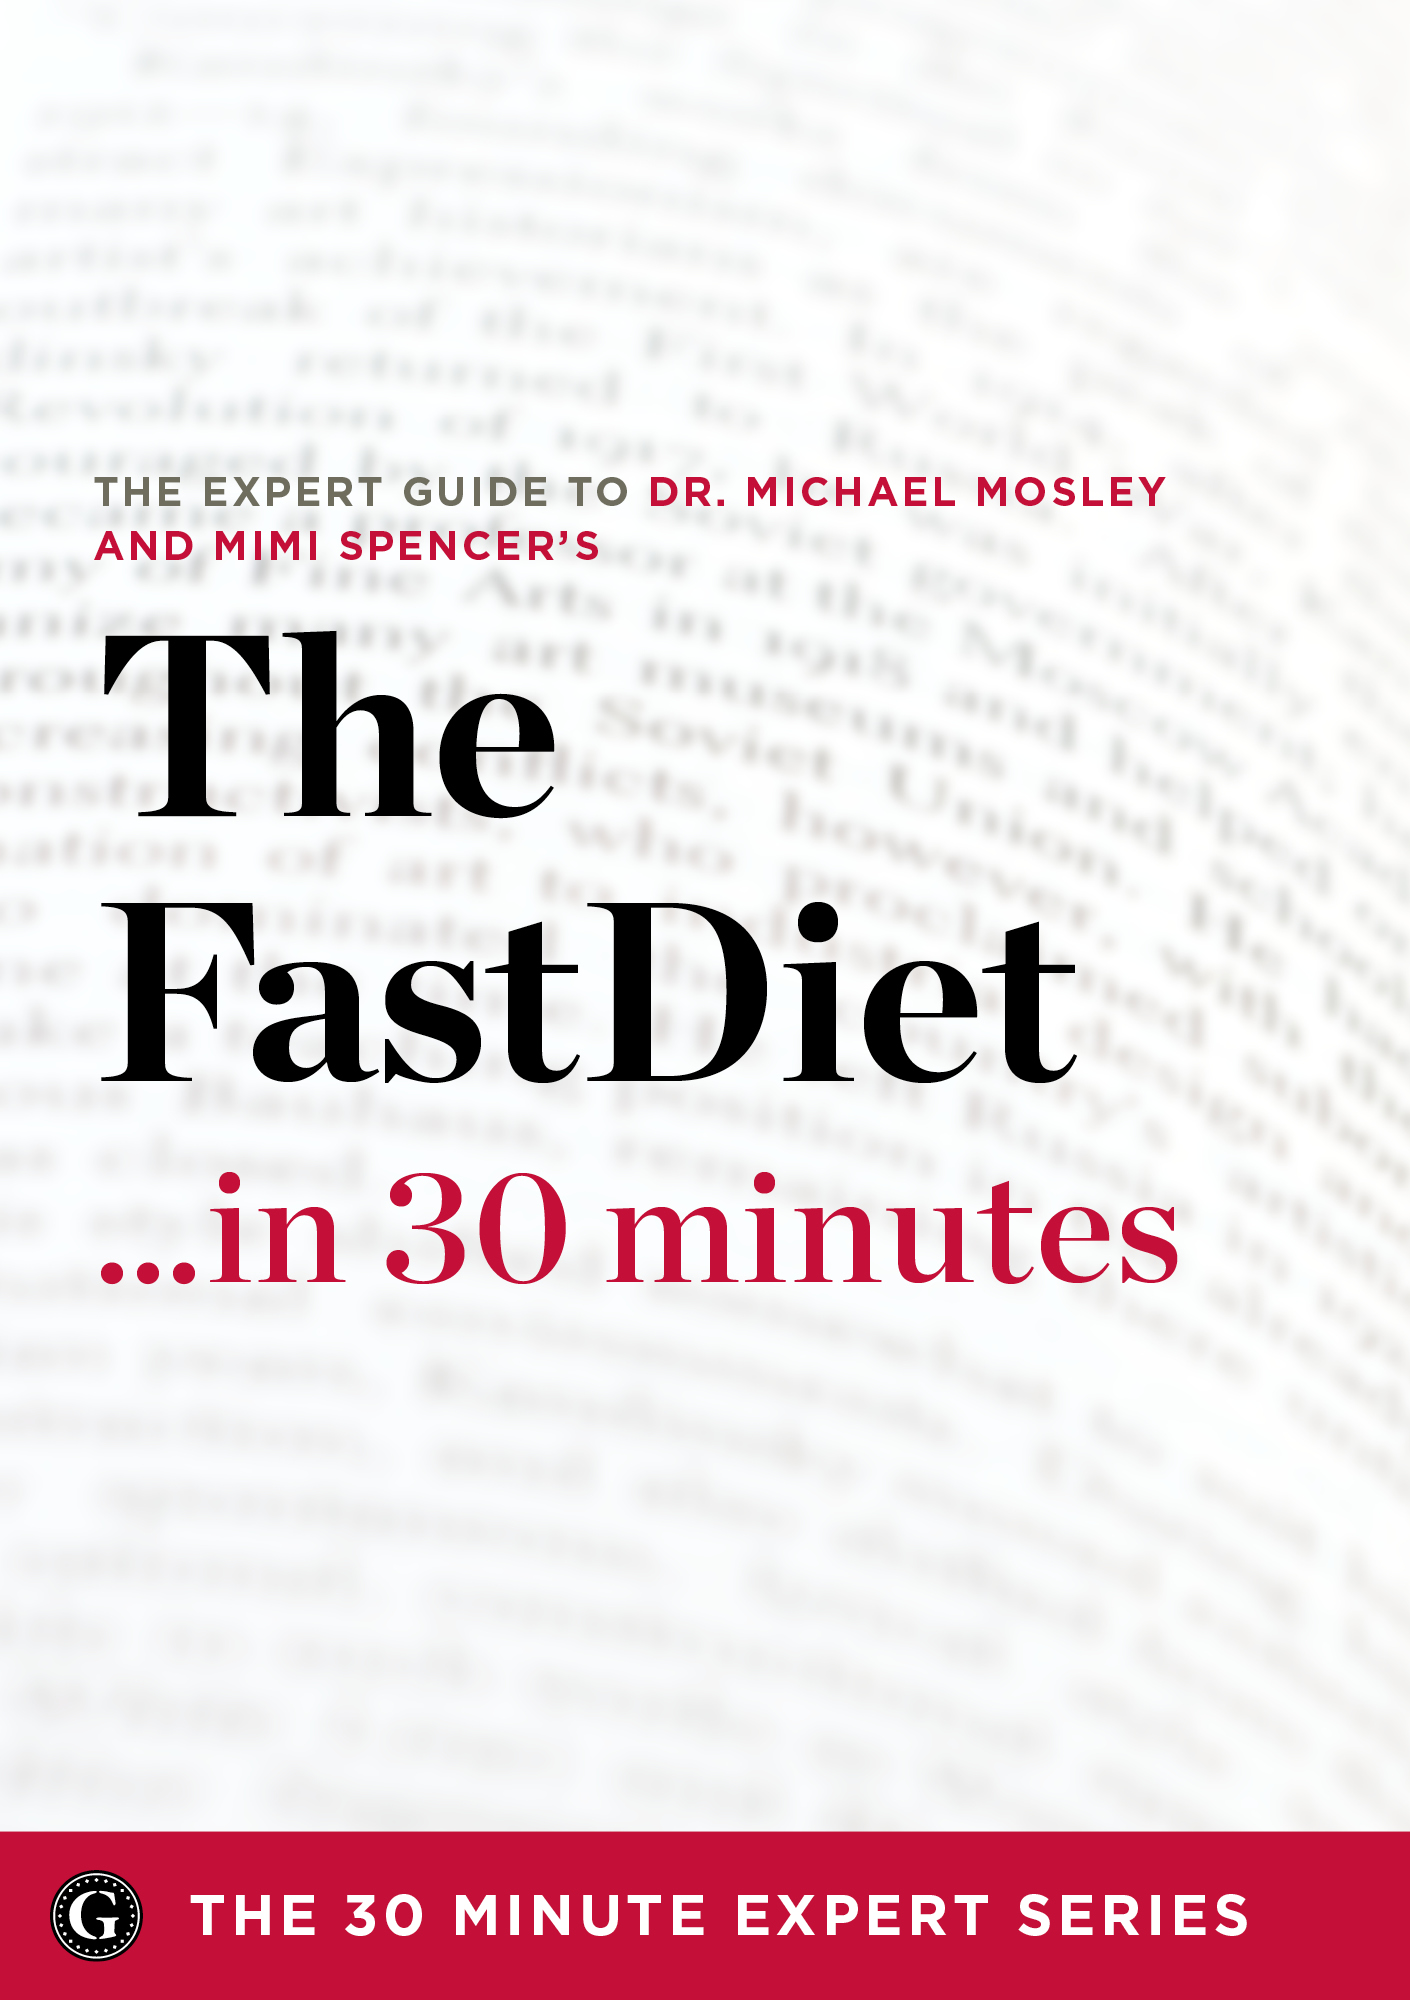 The Fast Diet in 30 Minutes – The Expert Guide to Michael Mosley's Critically Acclaimed Book